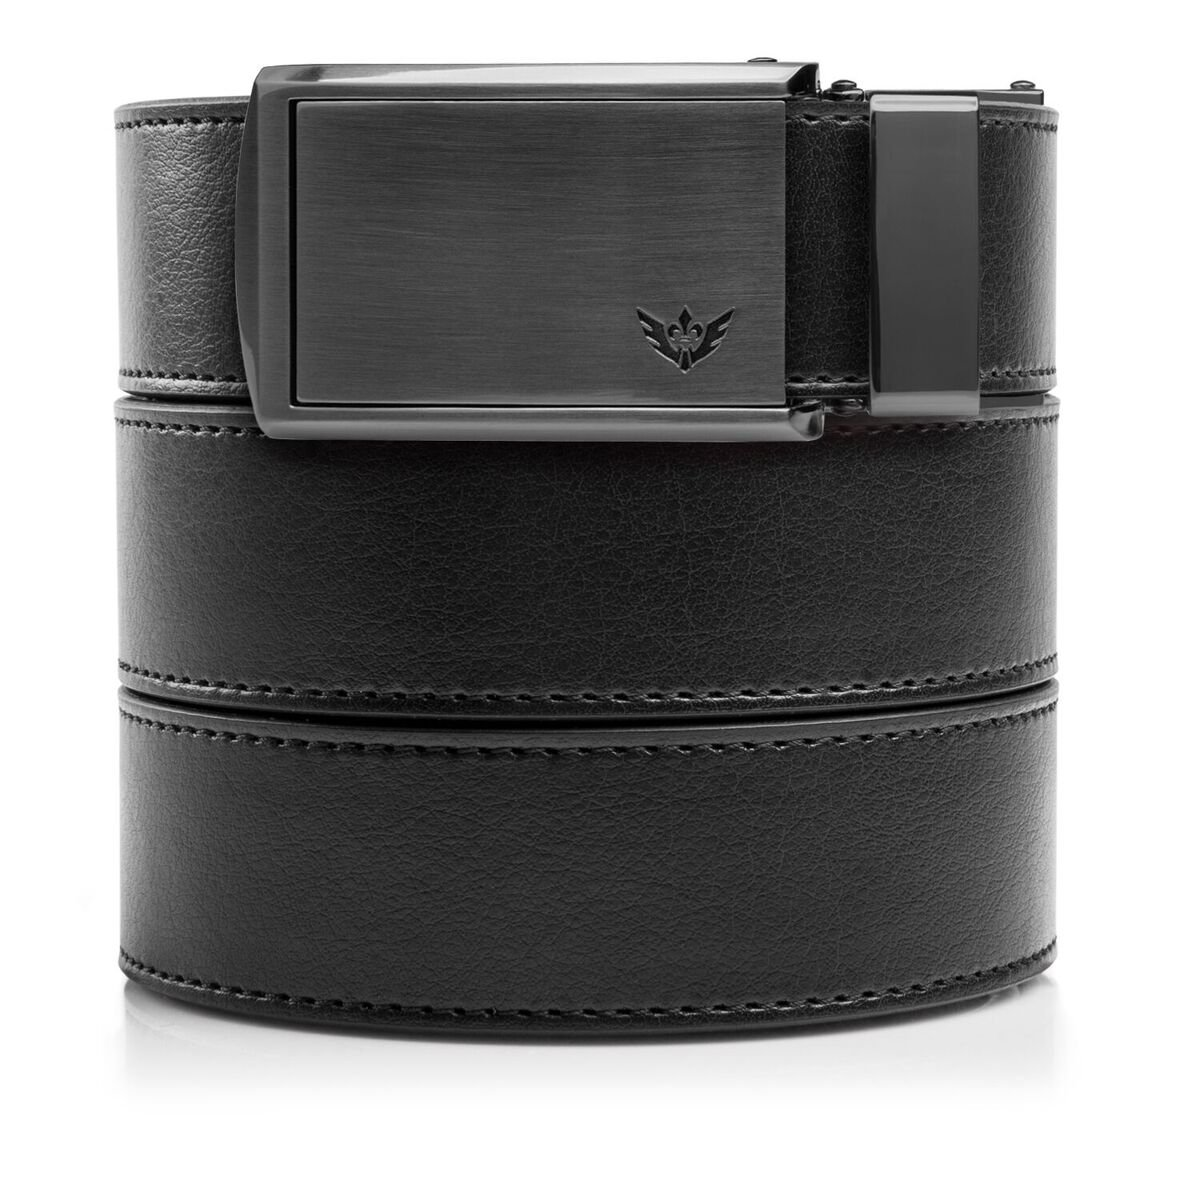 SlideBelts Men's Leather Ratchet Belt SB-BlackBarstripe